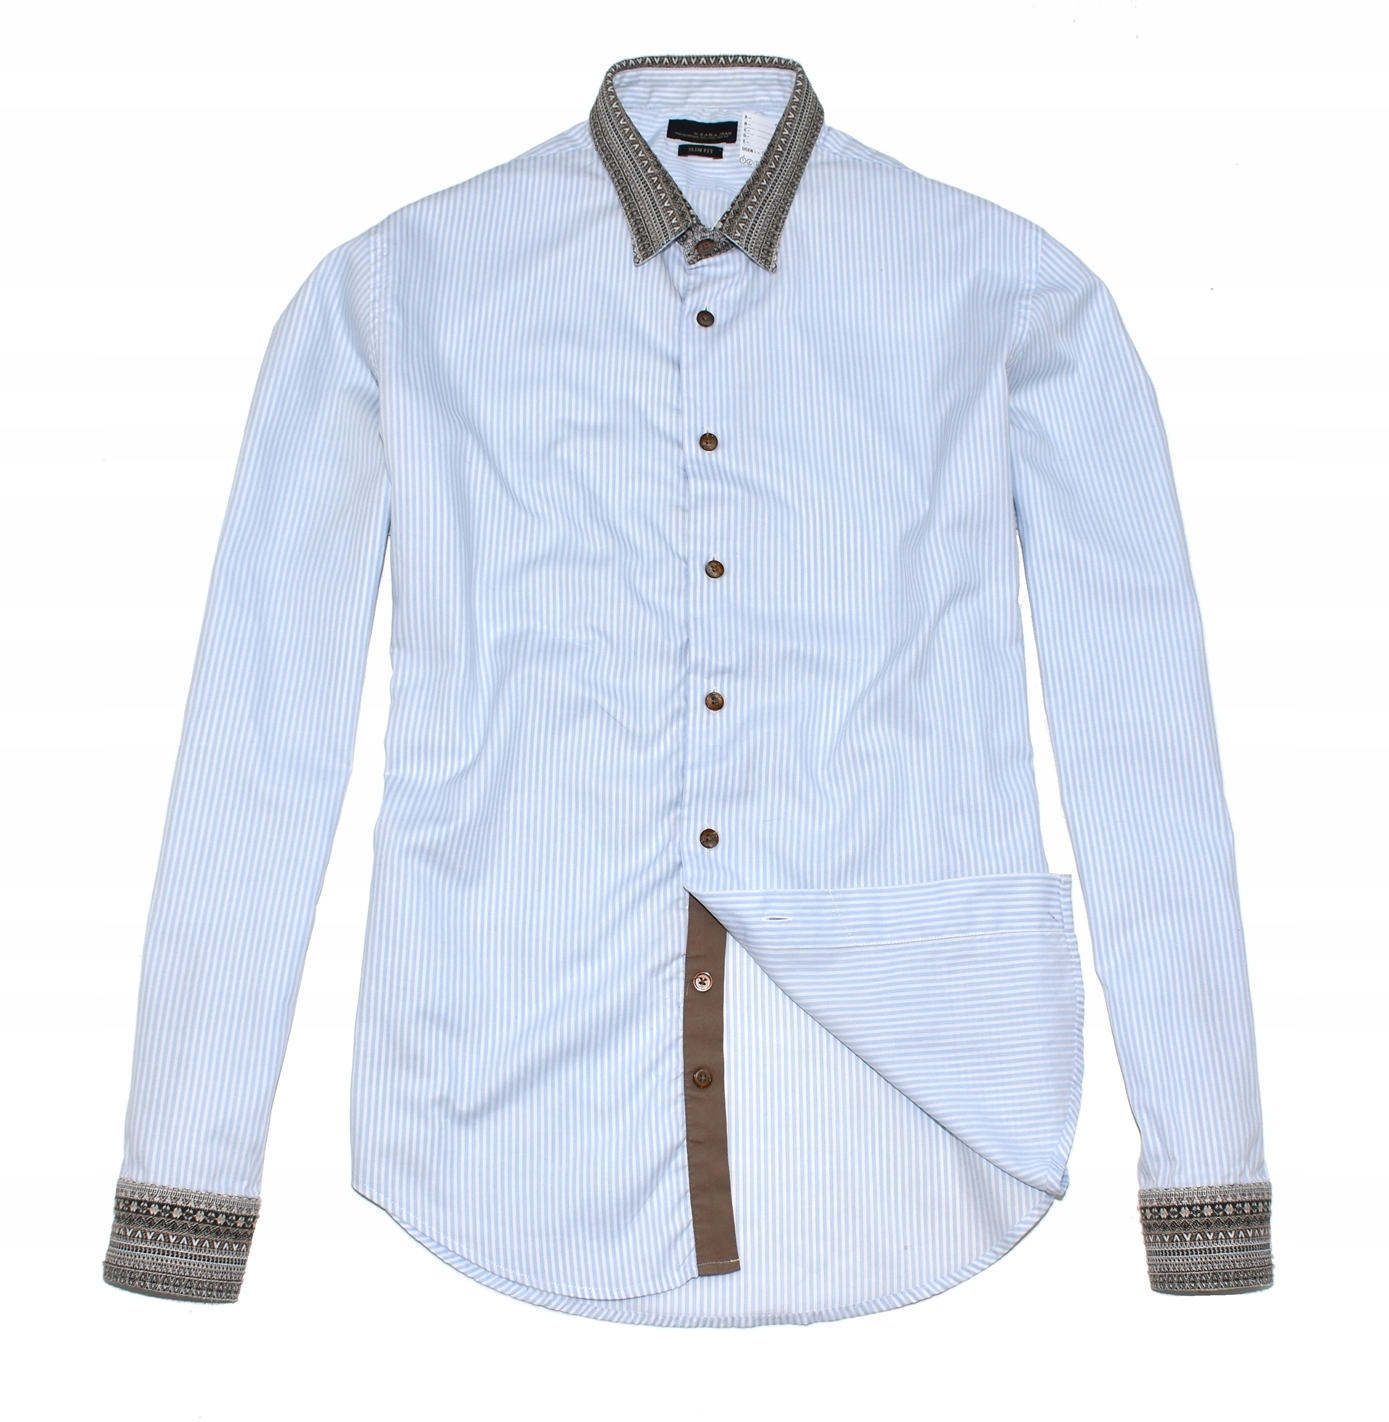 MM 328 H&M_TRENDY WORKWEAR SLIM FIT SHIRT_M/L